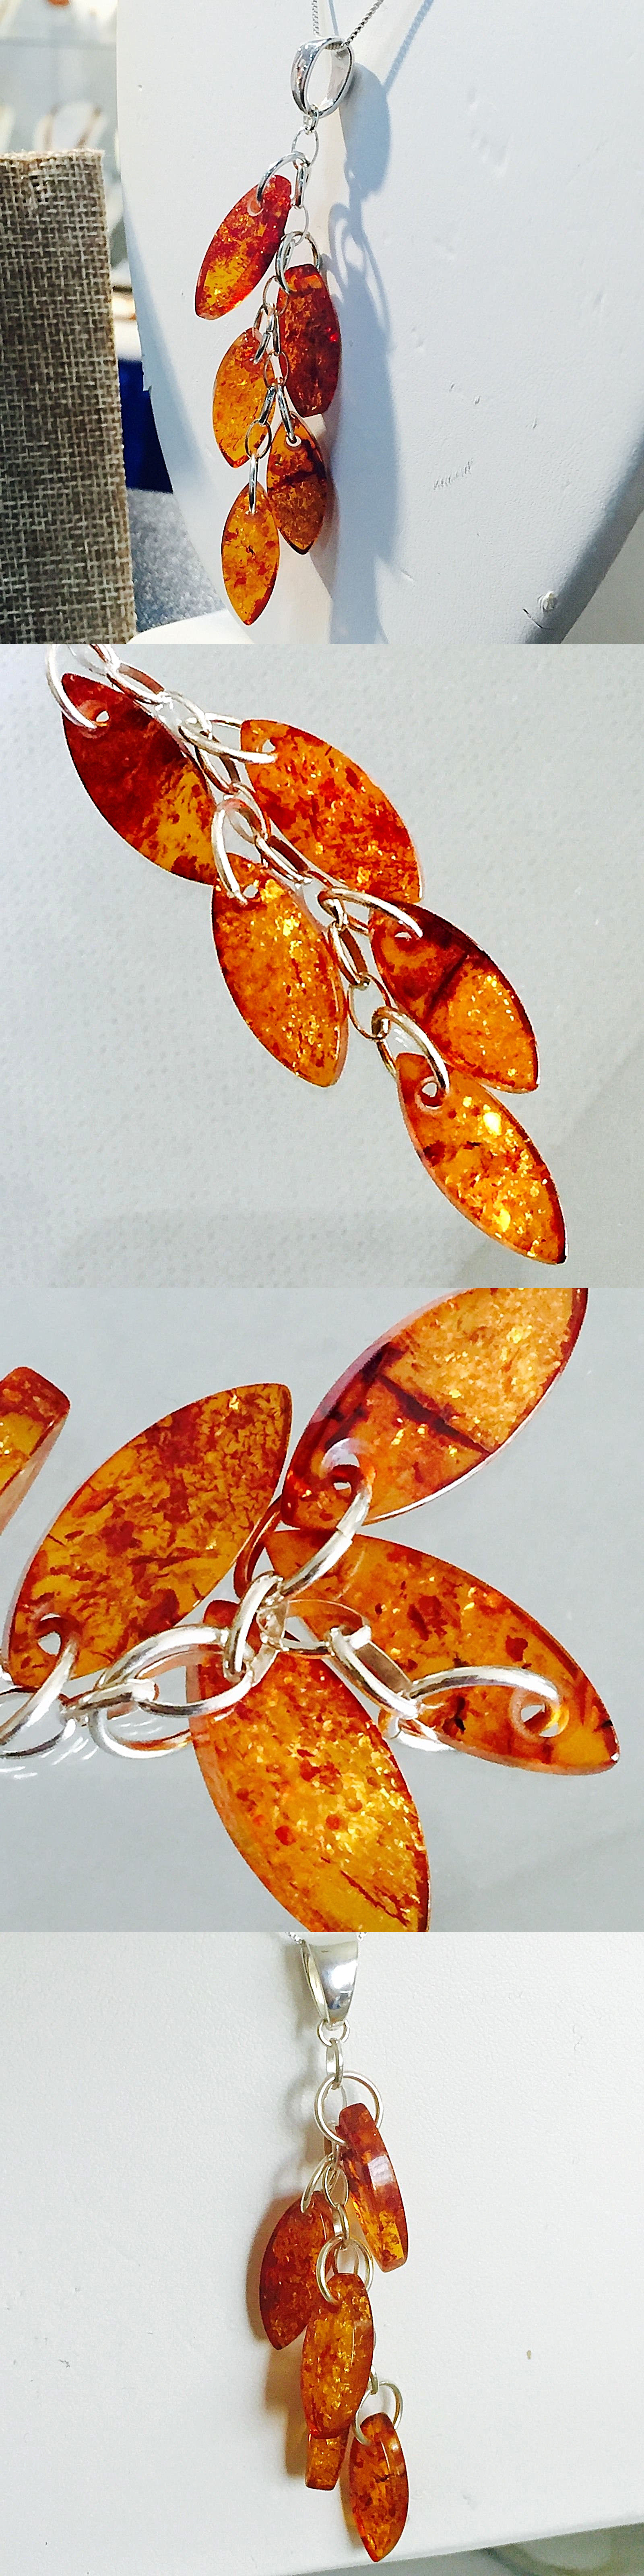 Amber 10191: 100% Genuine Vintage Russian Baltic Amber Butterscotch Egg Yolk Necklace Polish -> BUY IT NOW ONLY: $38.95 on eBay!